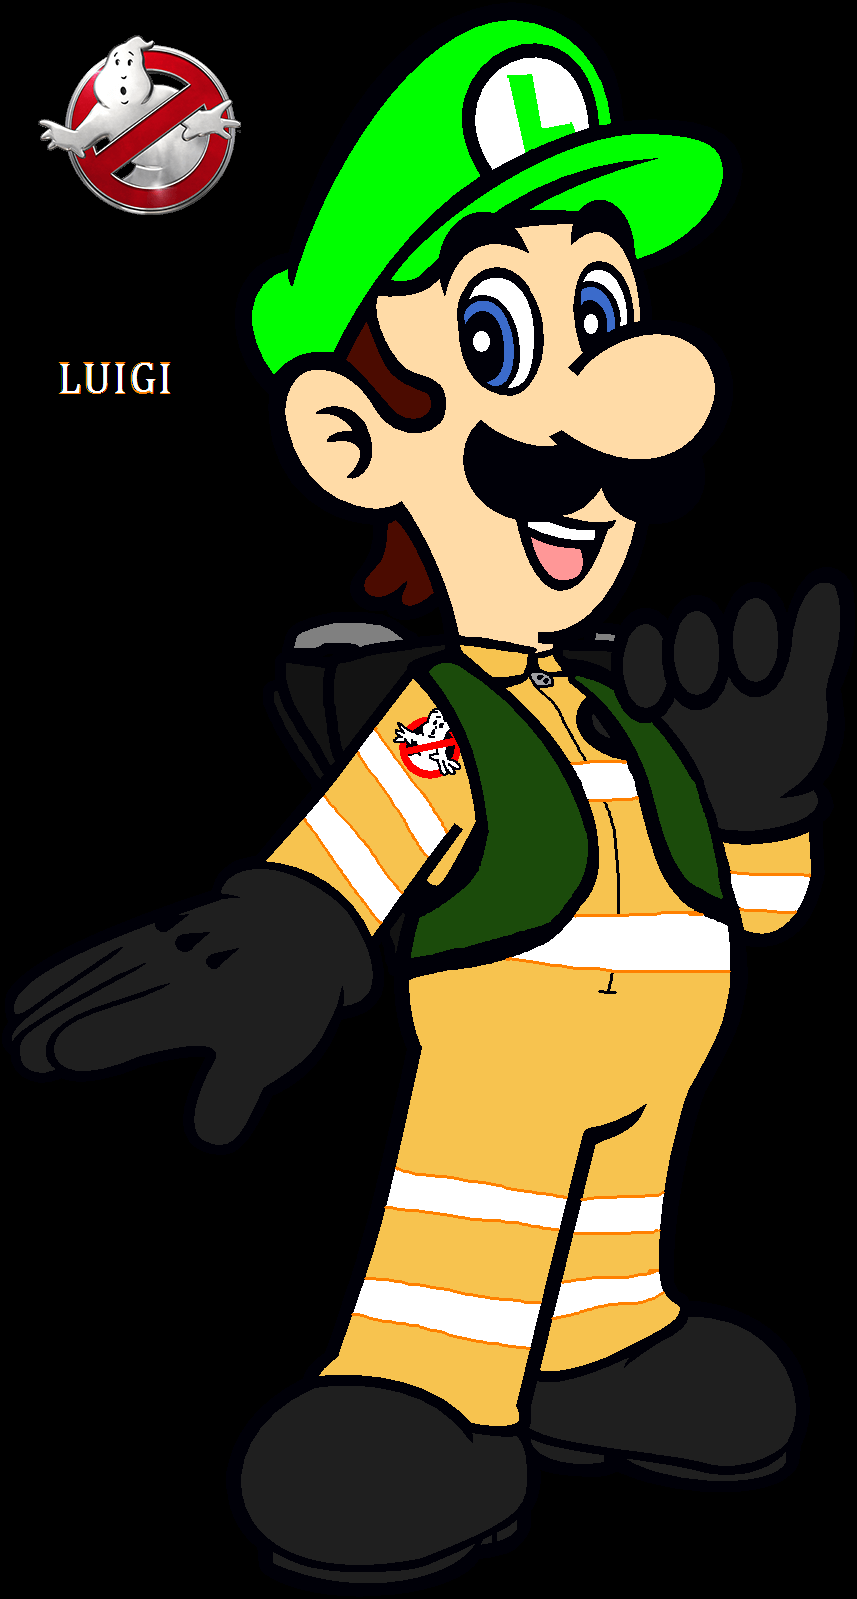 Ghostbuster Luigi (Rebooted) by Ghostbustersmaniac